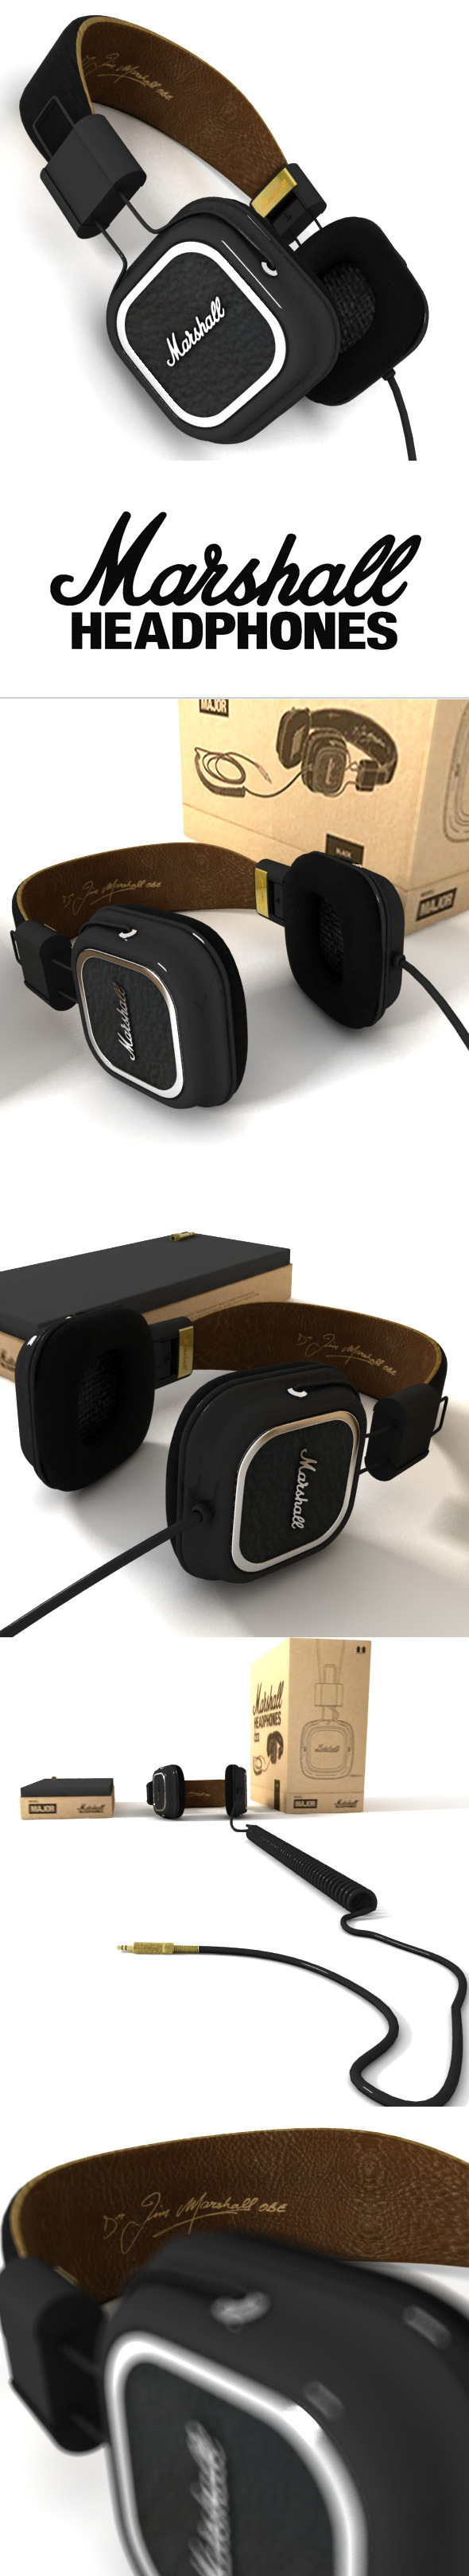 Marshall Headphones Major - 3DOcean Item for Sale